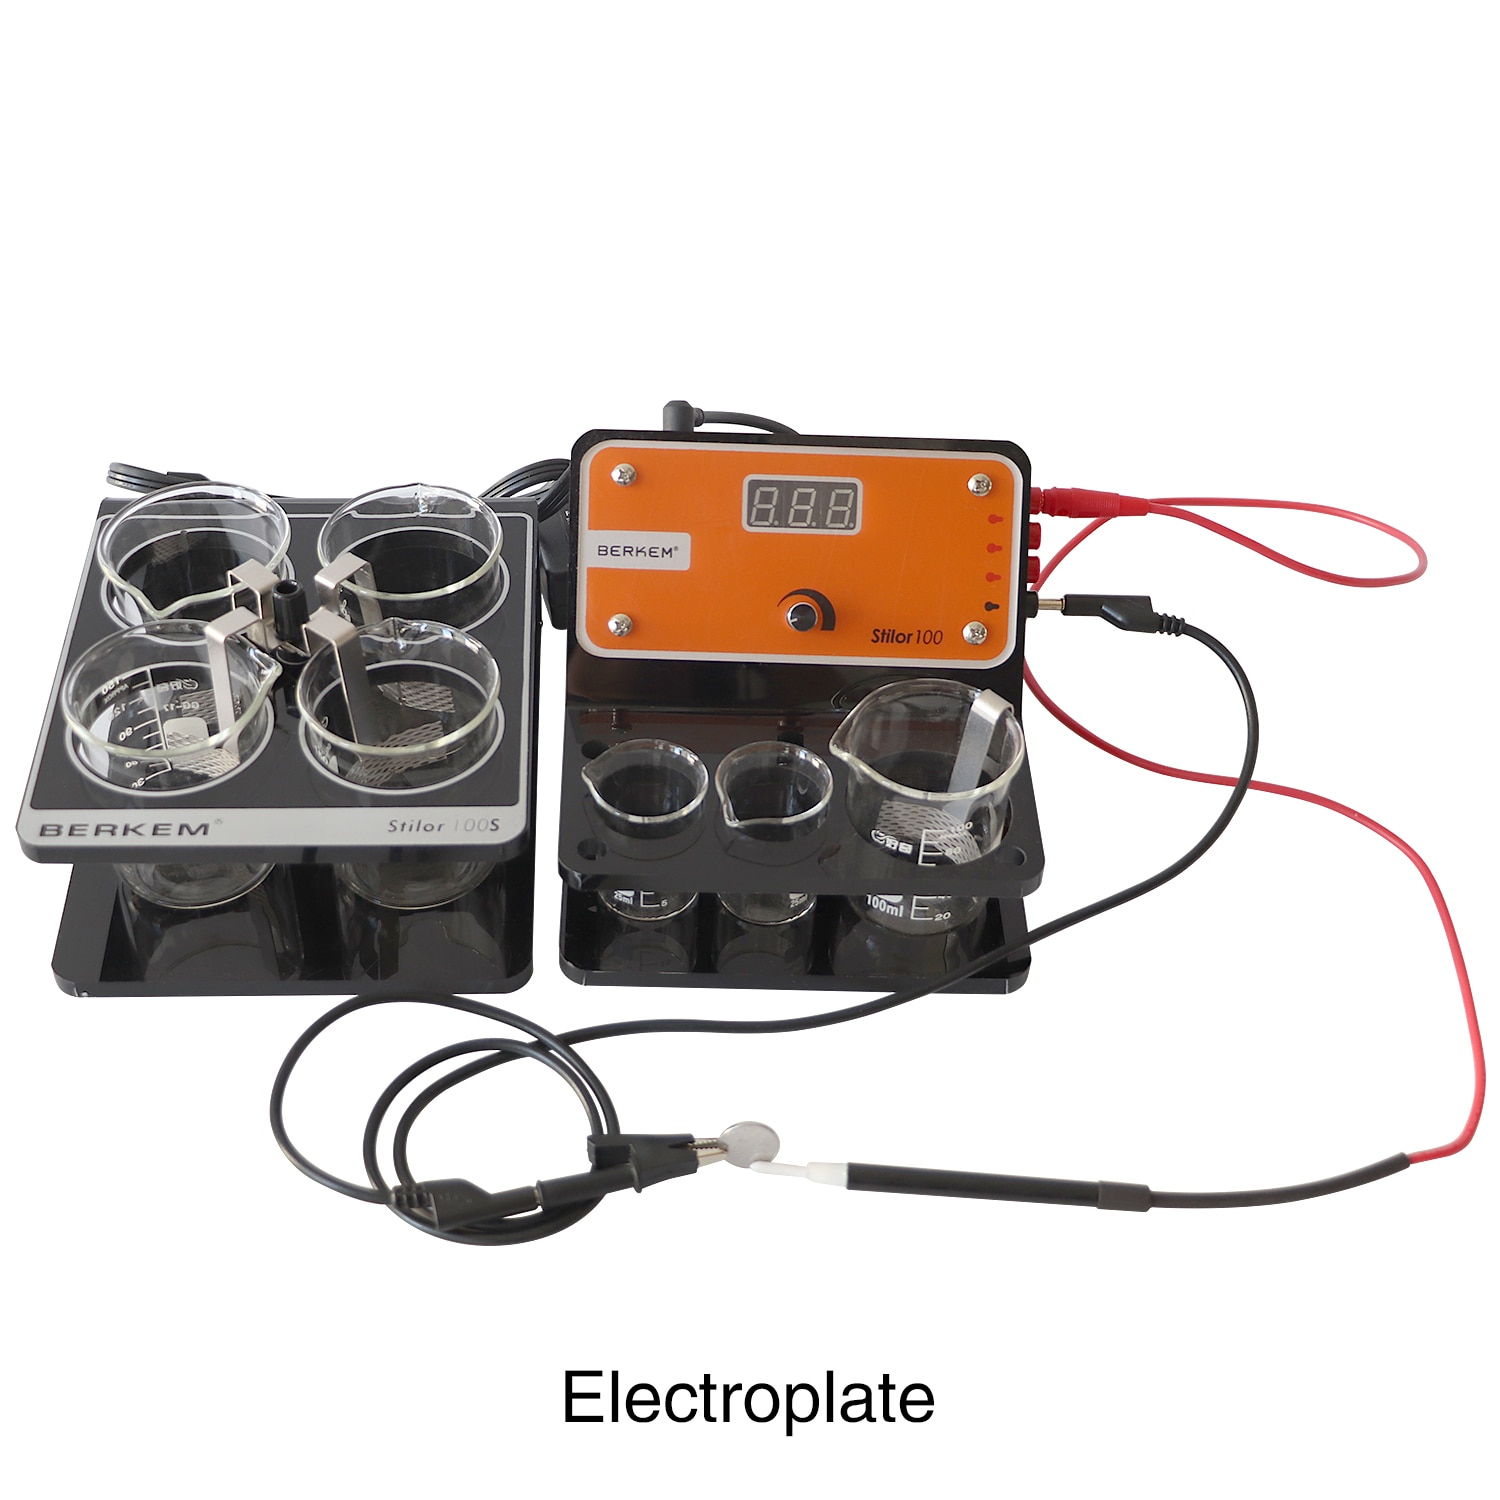 220V Pen-Type Electroplating Machine Gold Plating Jewelry Tools Plating System Pen Machine Equipment